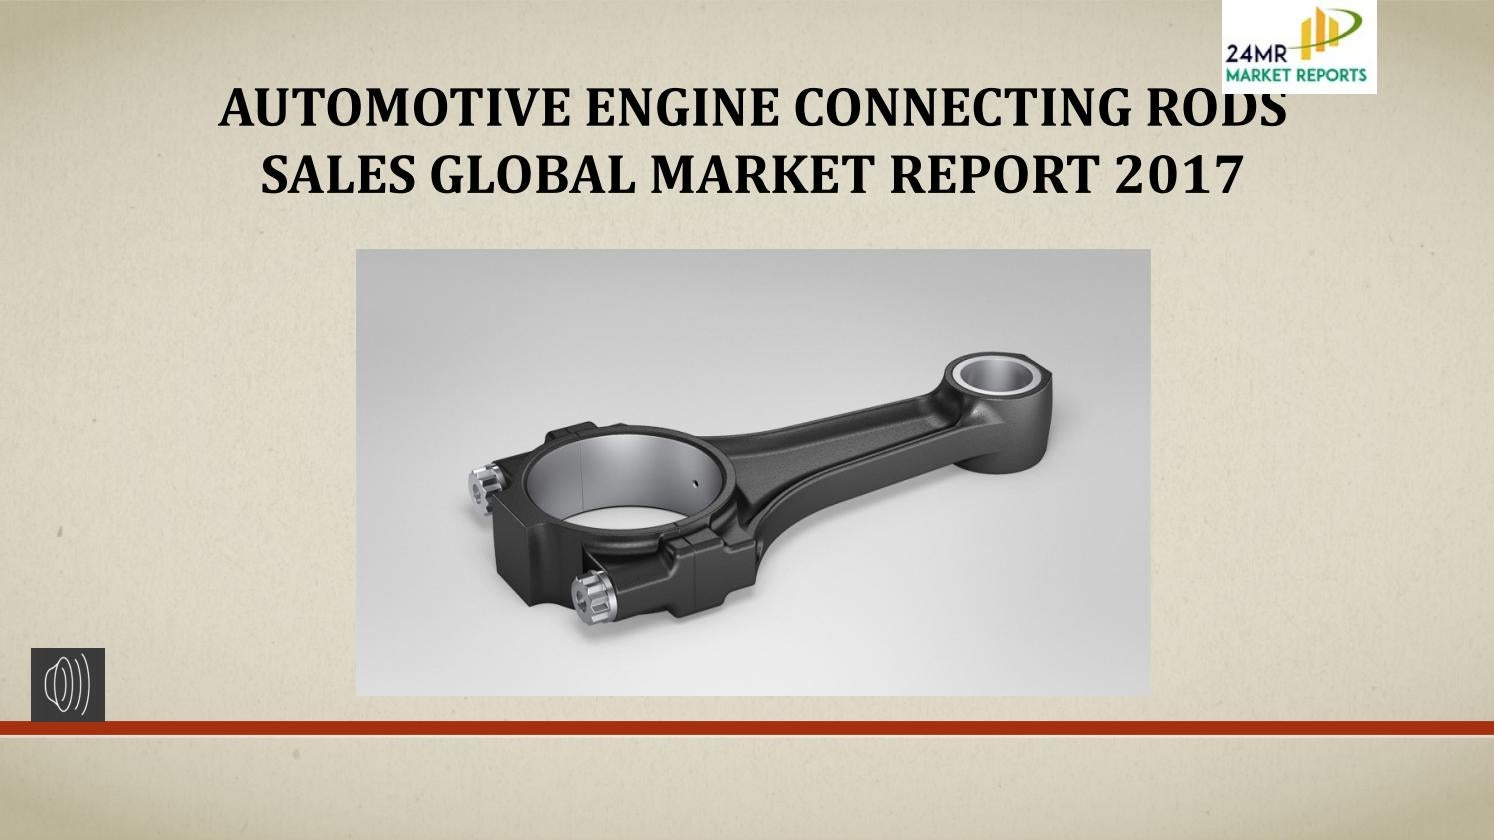 Automotive engine connecting rods sales global market report